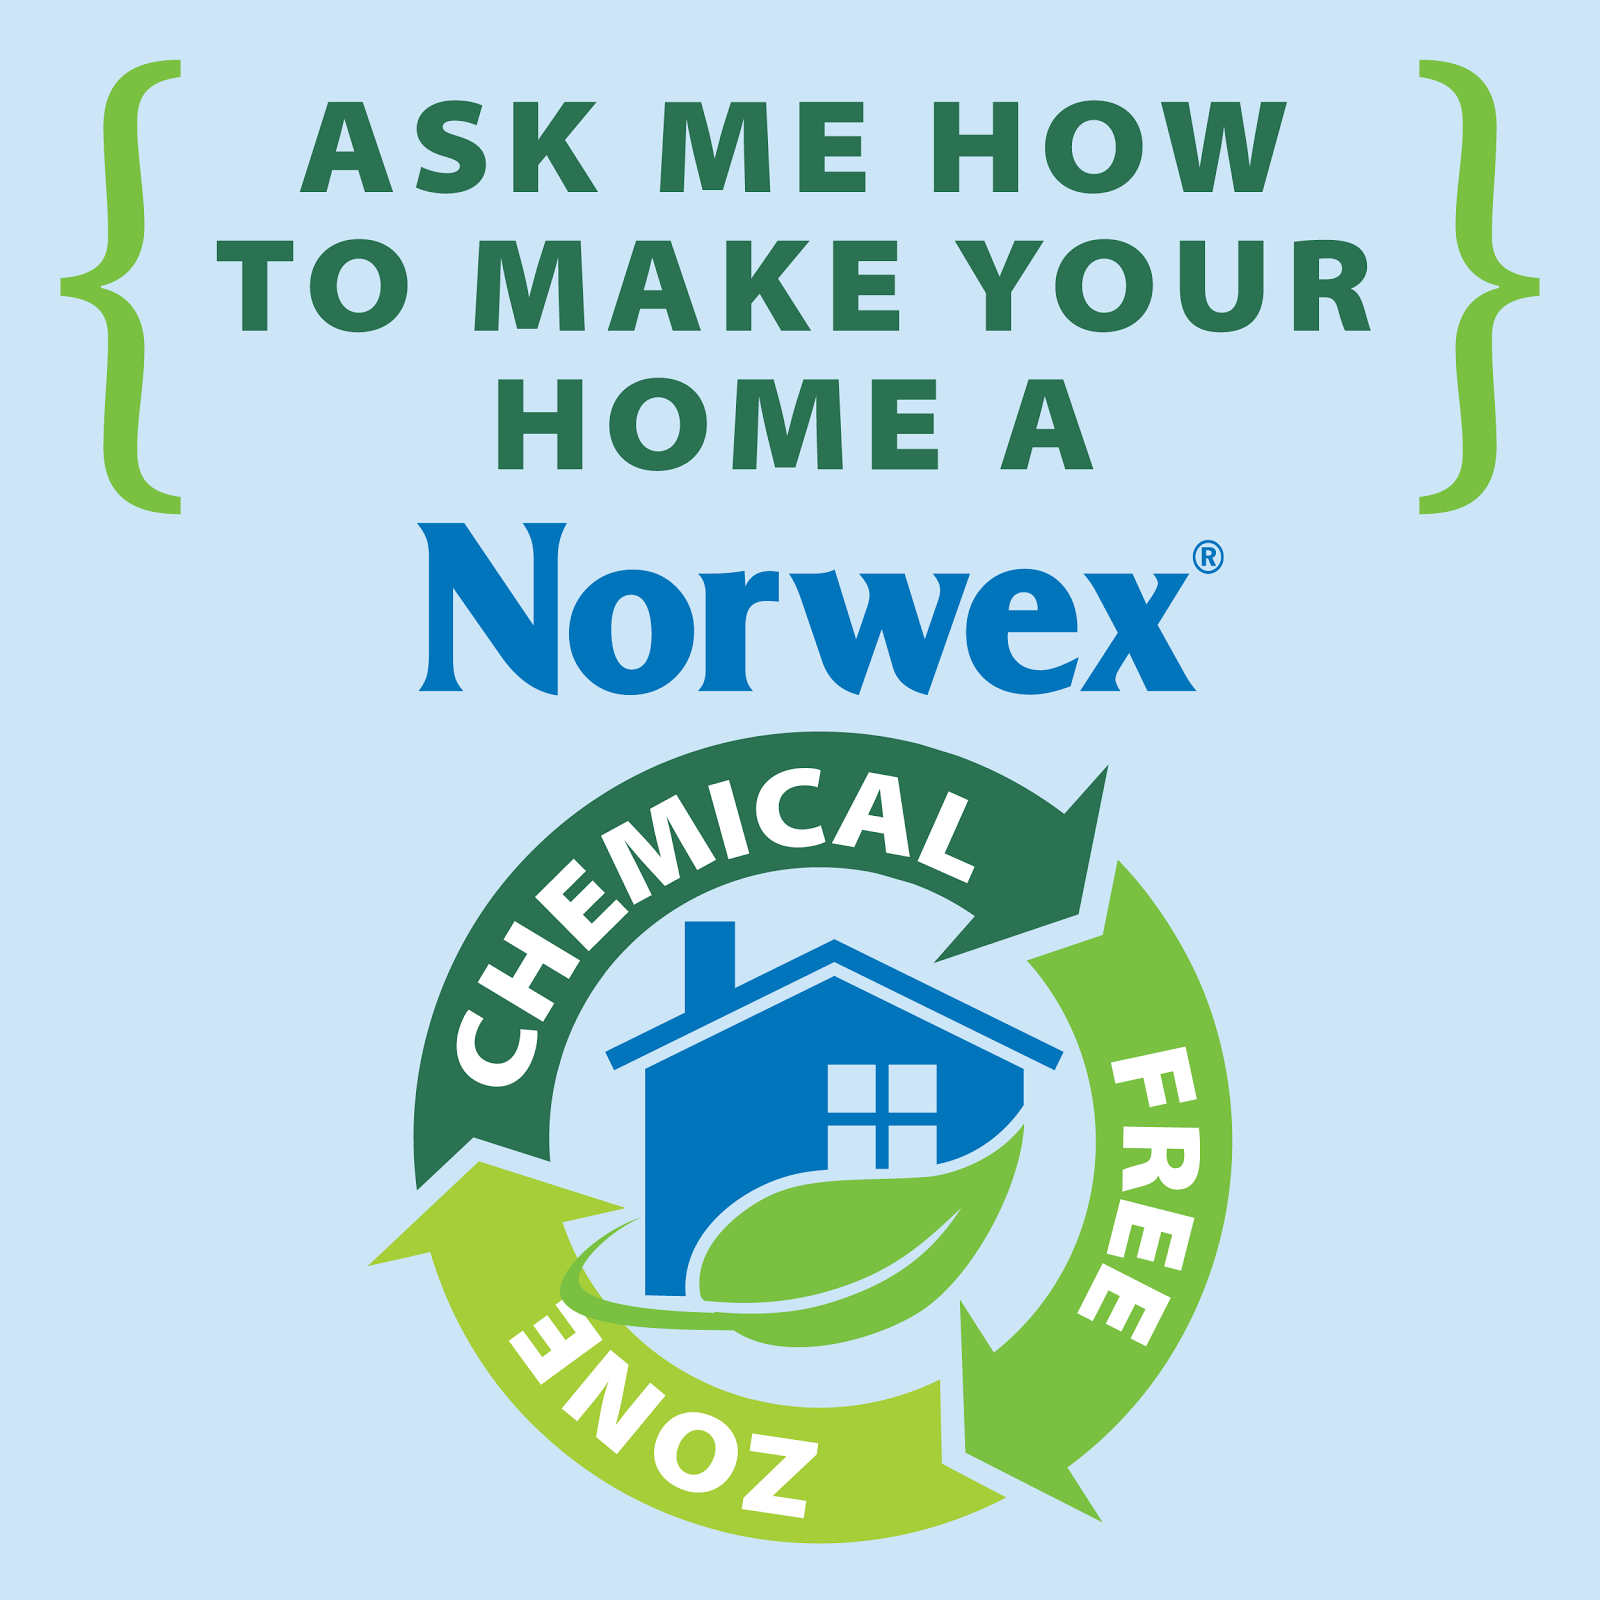 I'd love to tell you about Norwex!